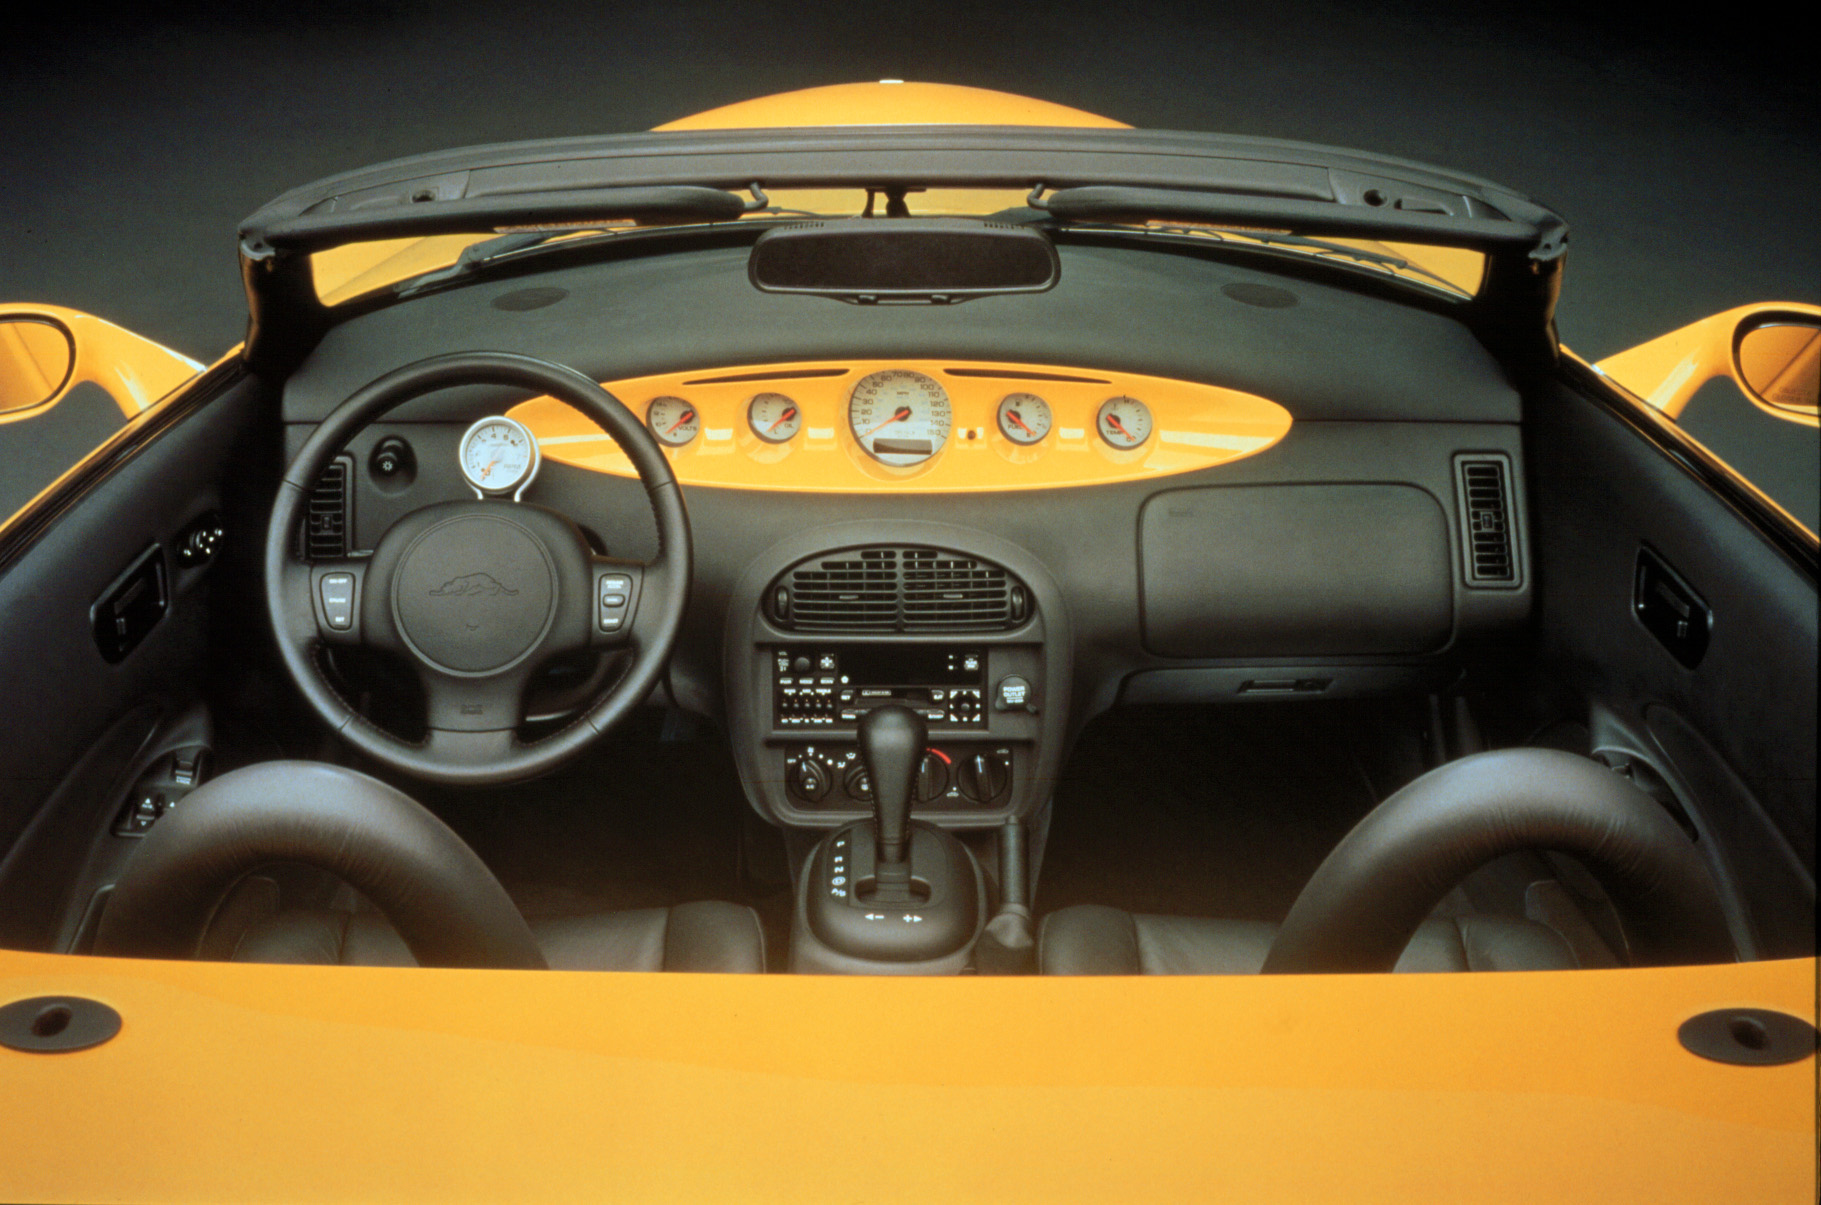 The Prowler's cockpit was simple, uncluttered, and fun, all while borrowing from the rest of Chrysler's extensive parts bins.